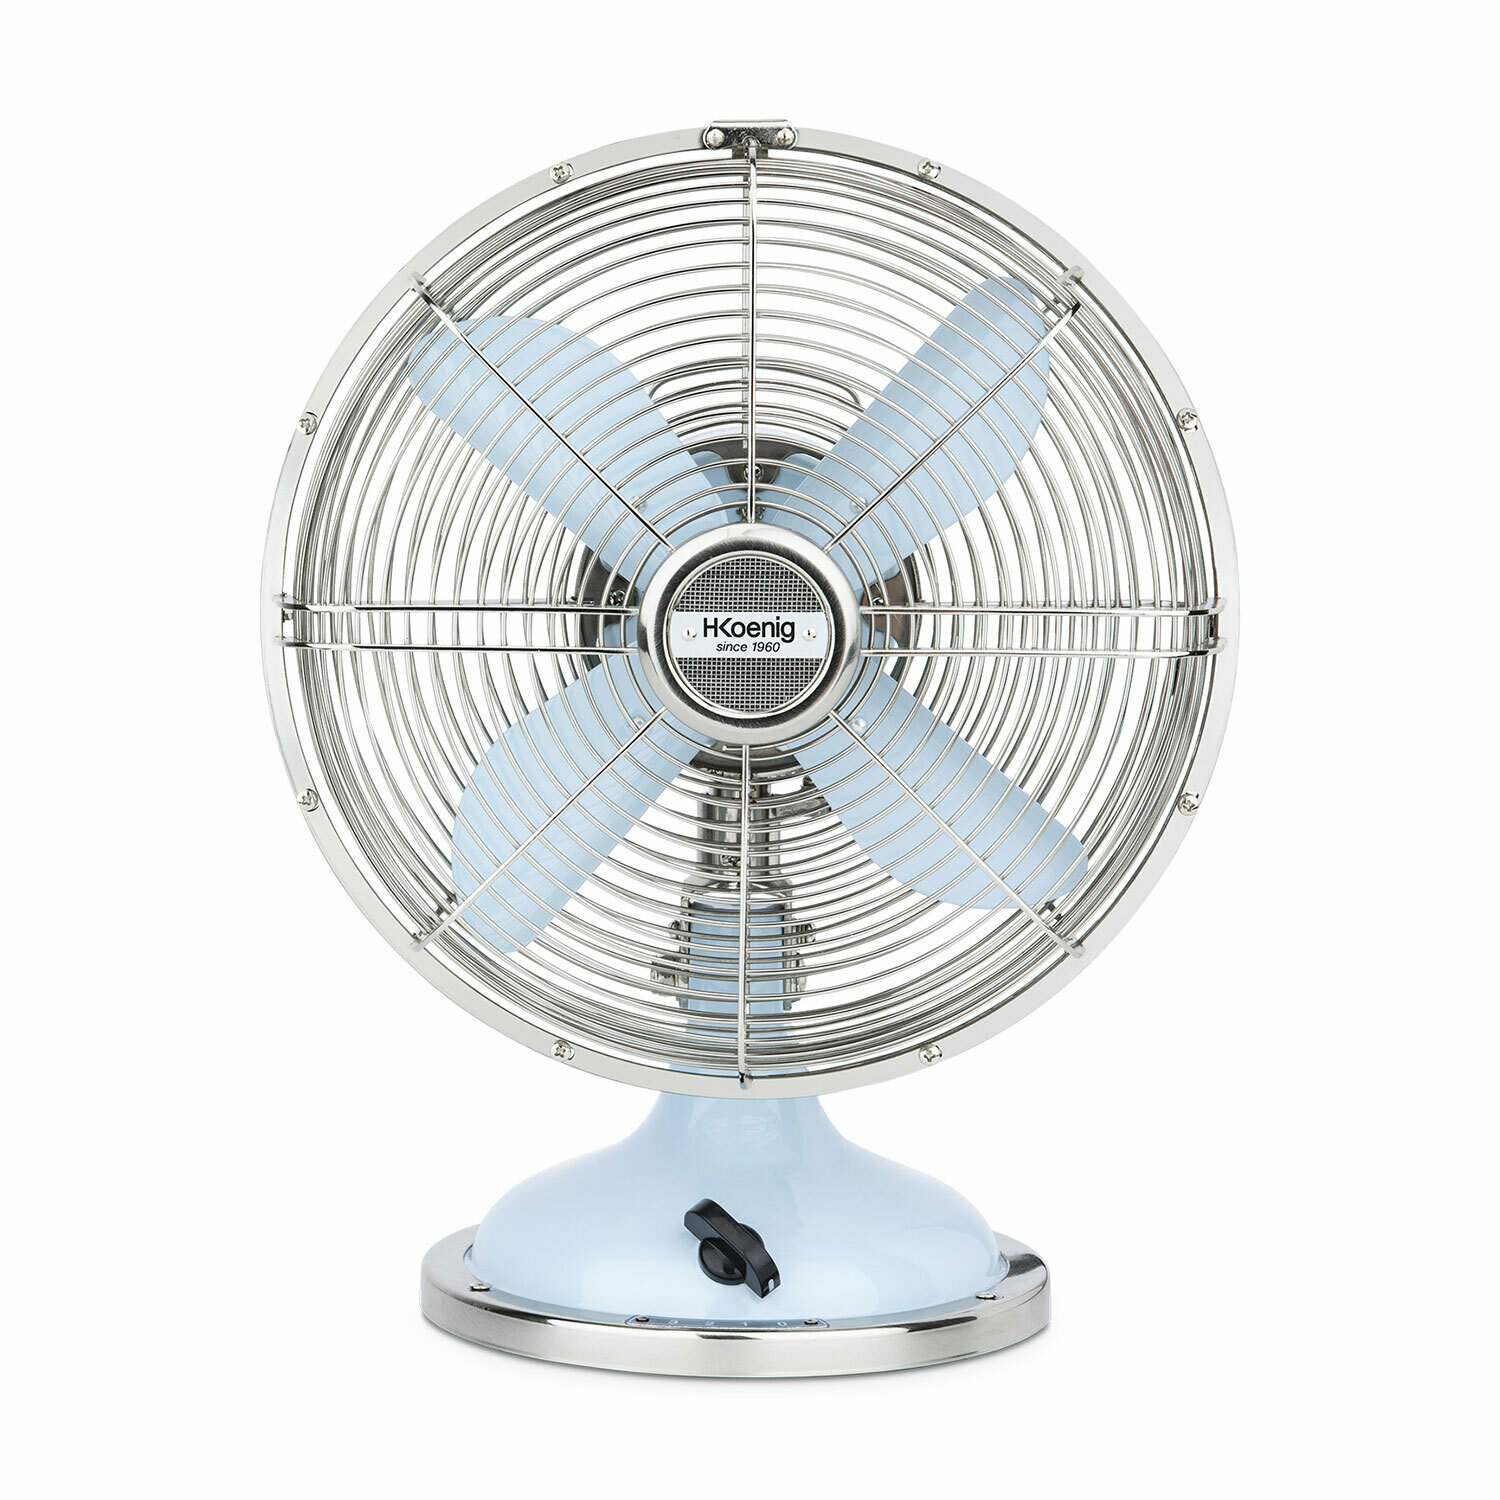 JOE50 Design Metall Ventilator